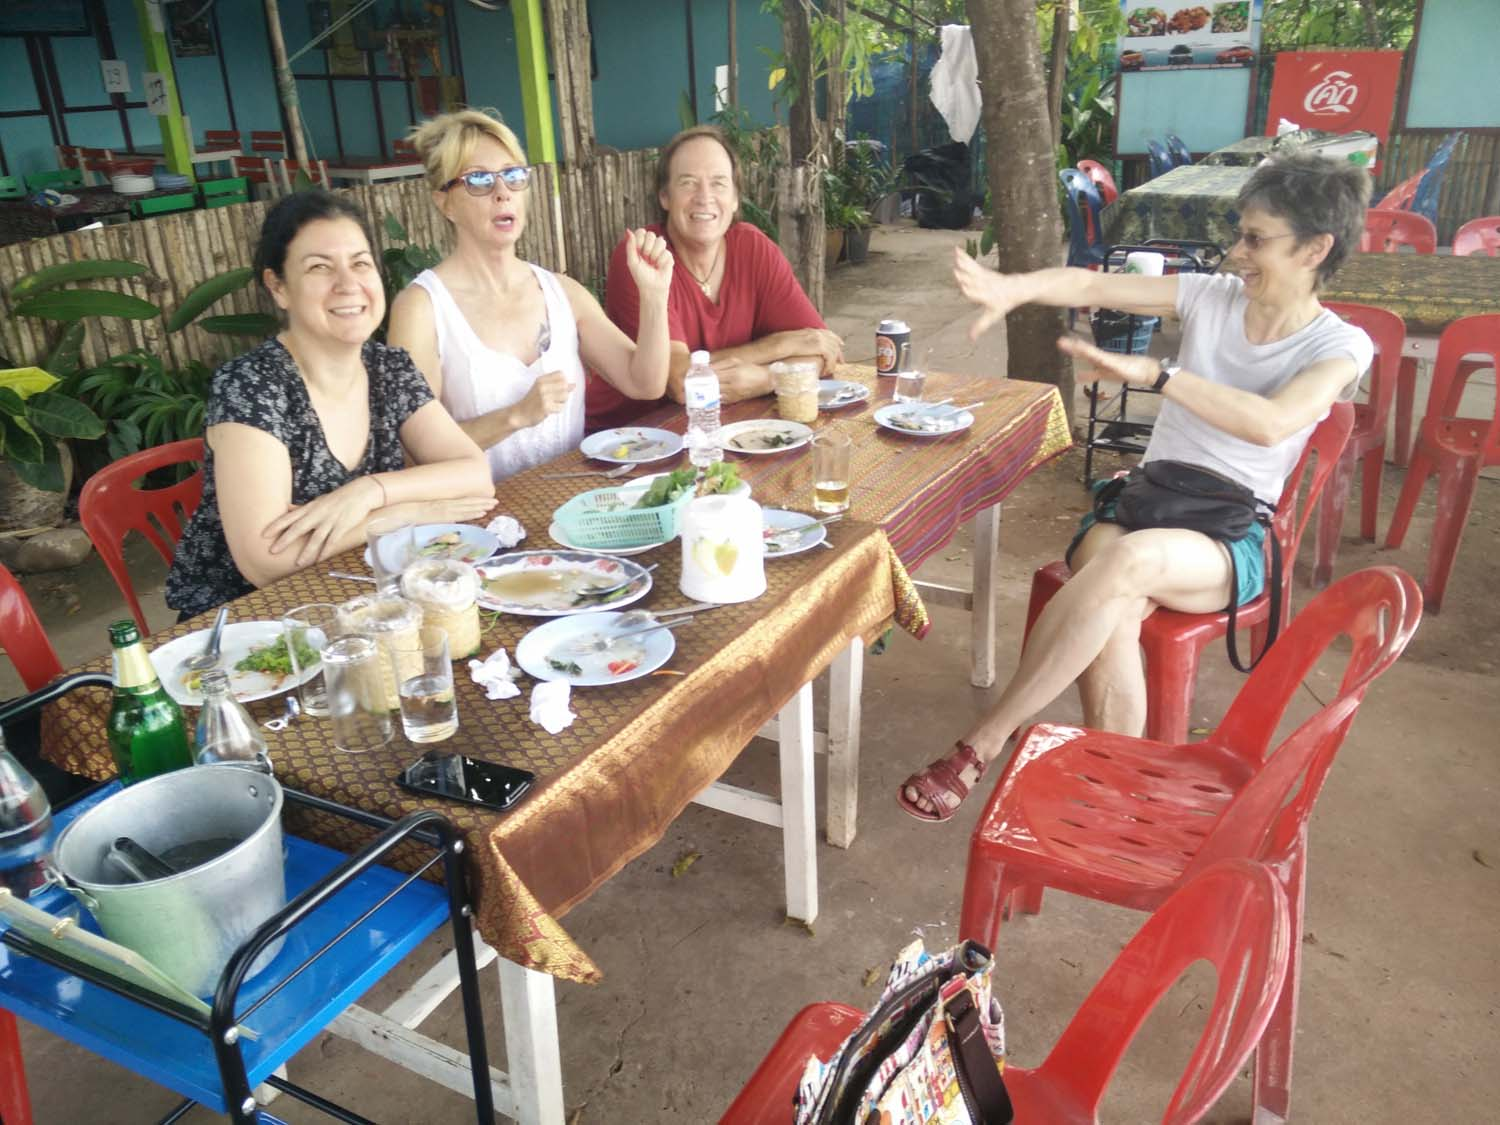 Artist Frances enjoying a painting holiday in Thailand  003.jpg